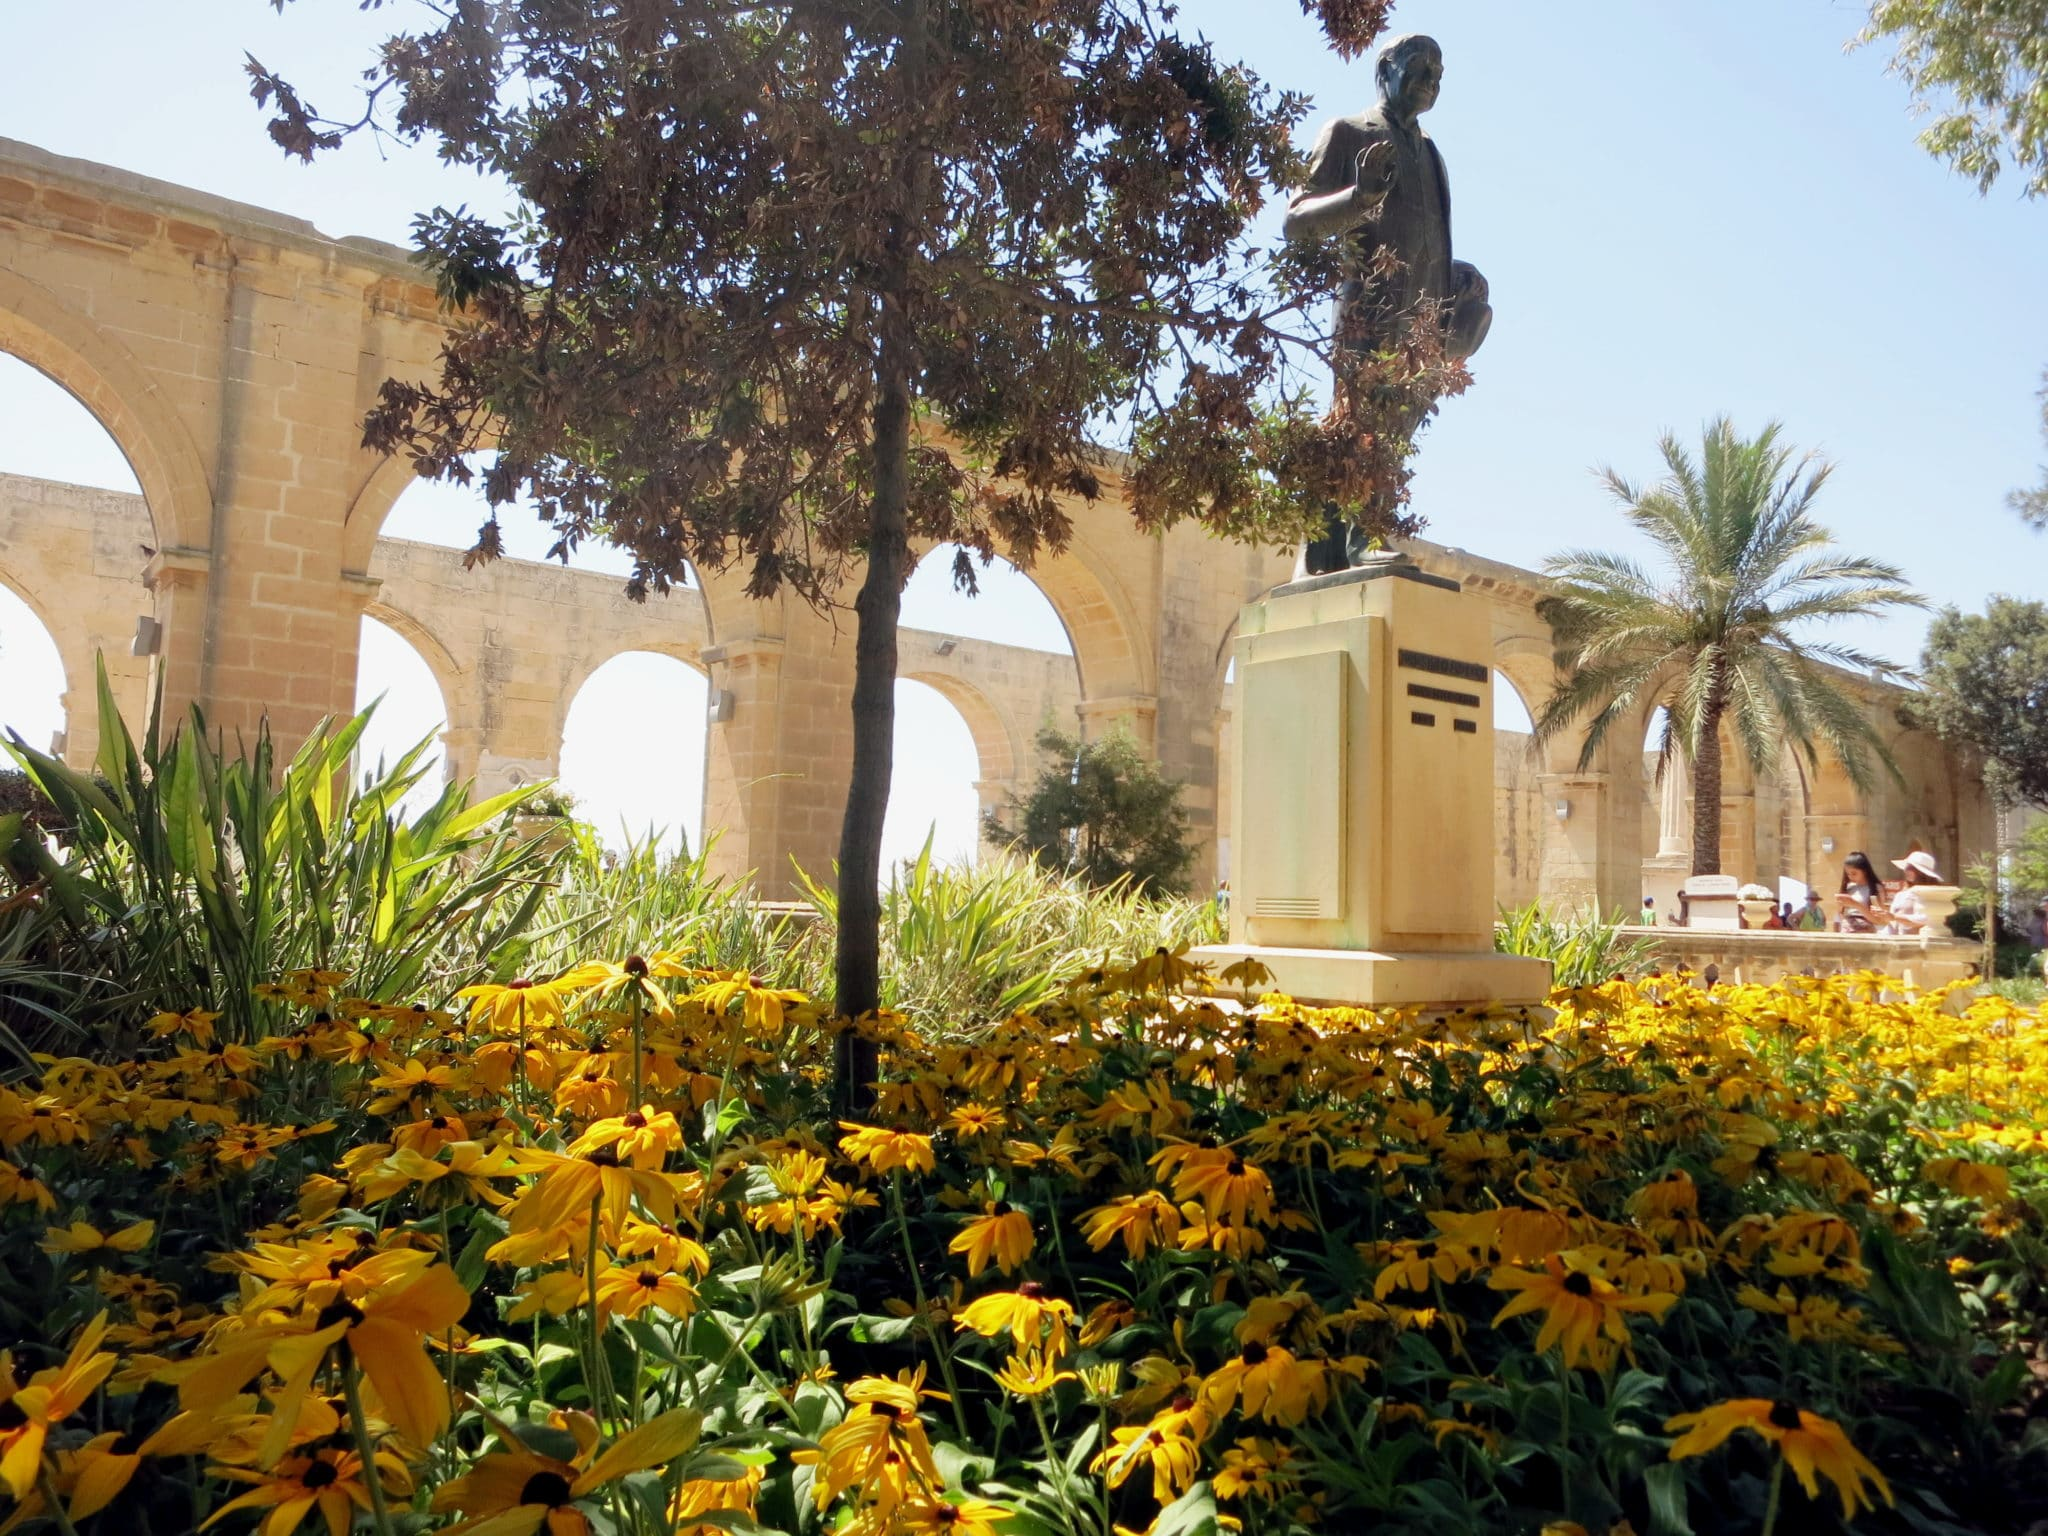 Weekend in Valletta Upper Barraka gardens Malta